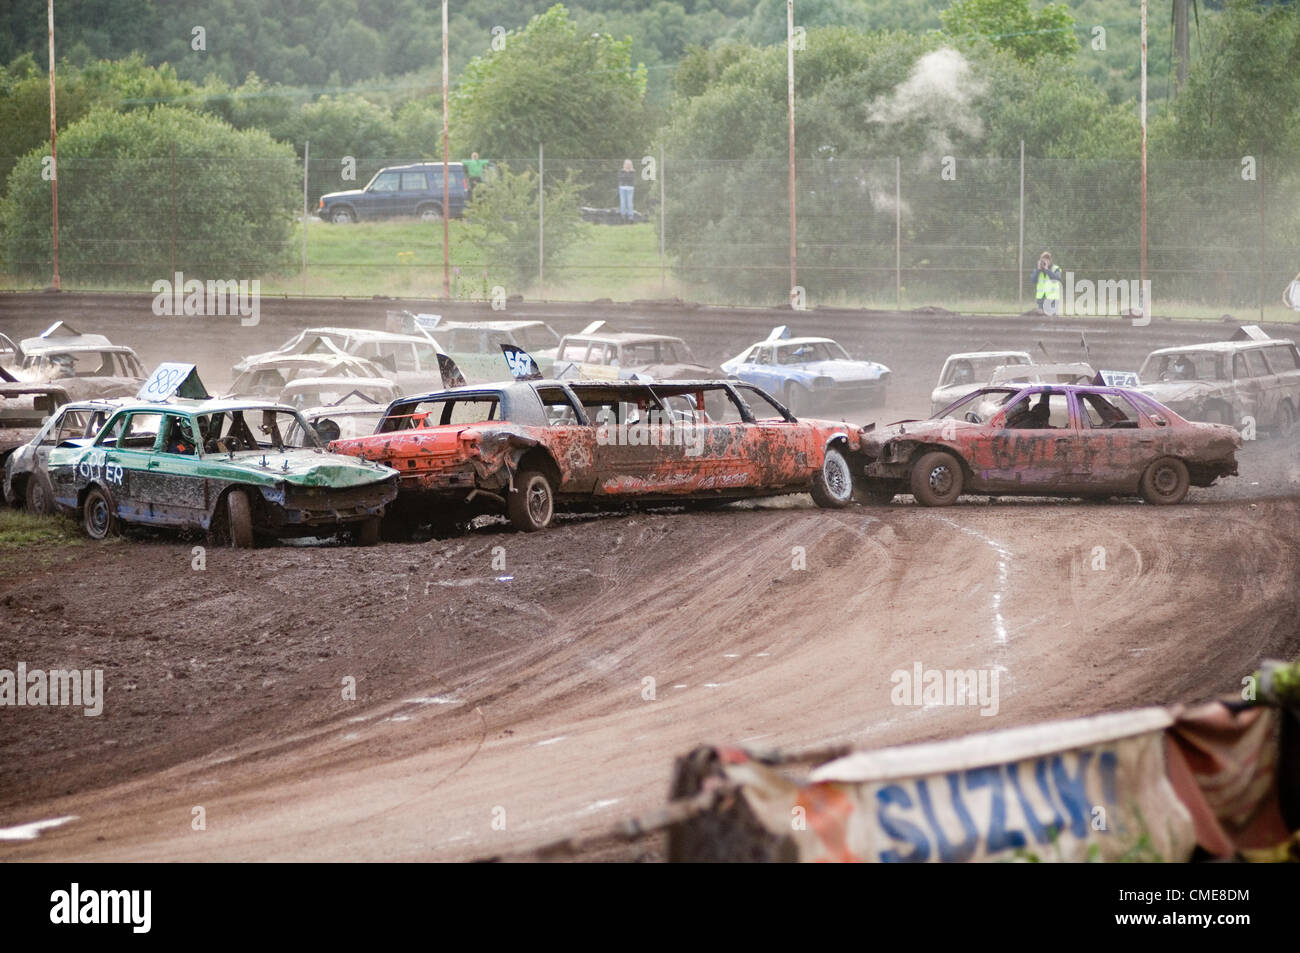 Stock Car Crashes On Dirt